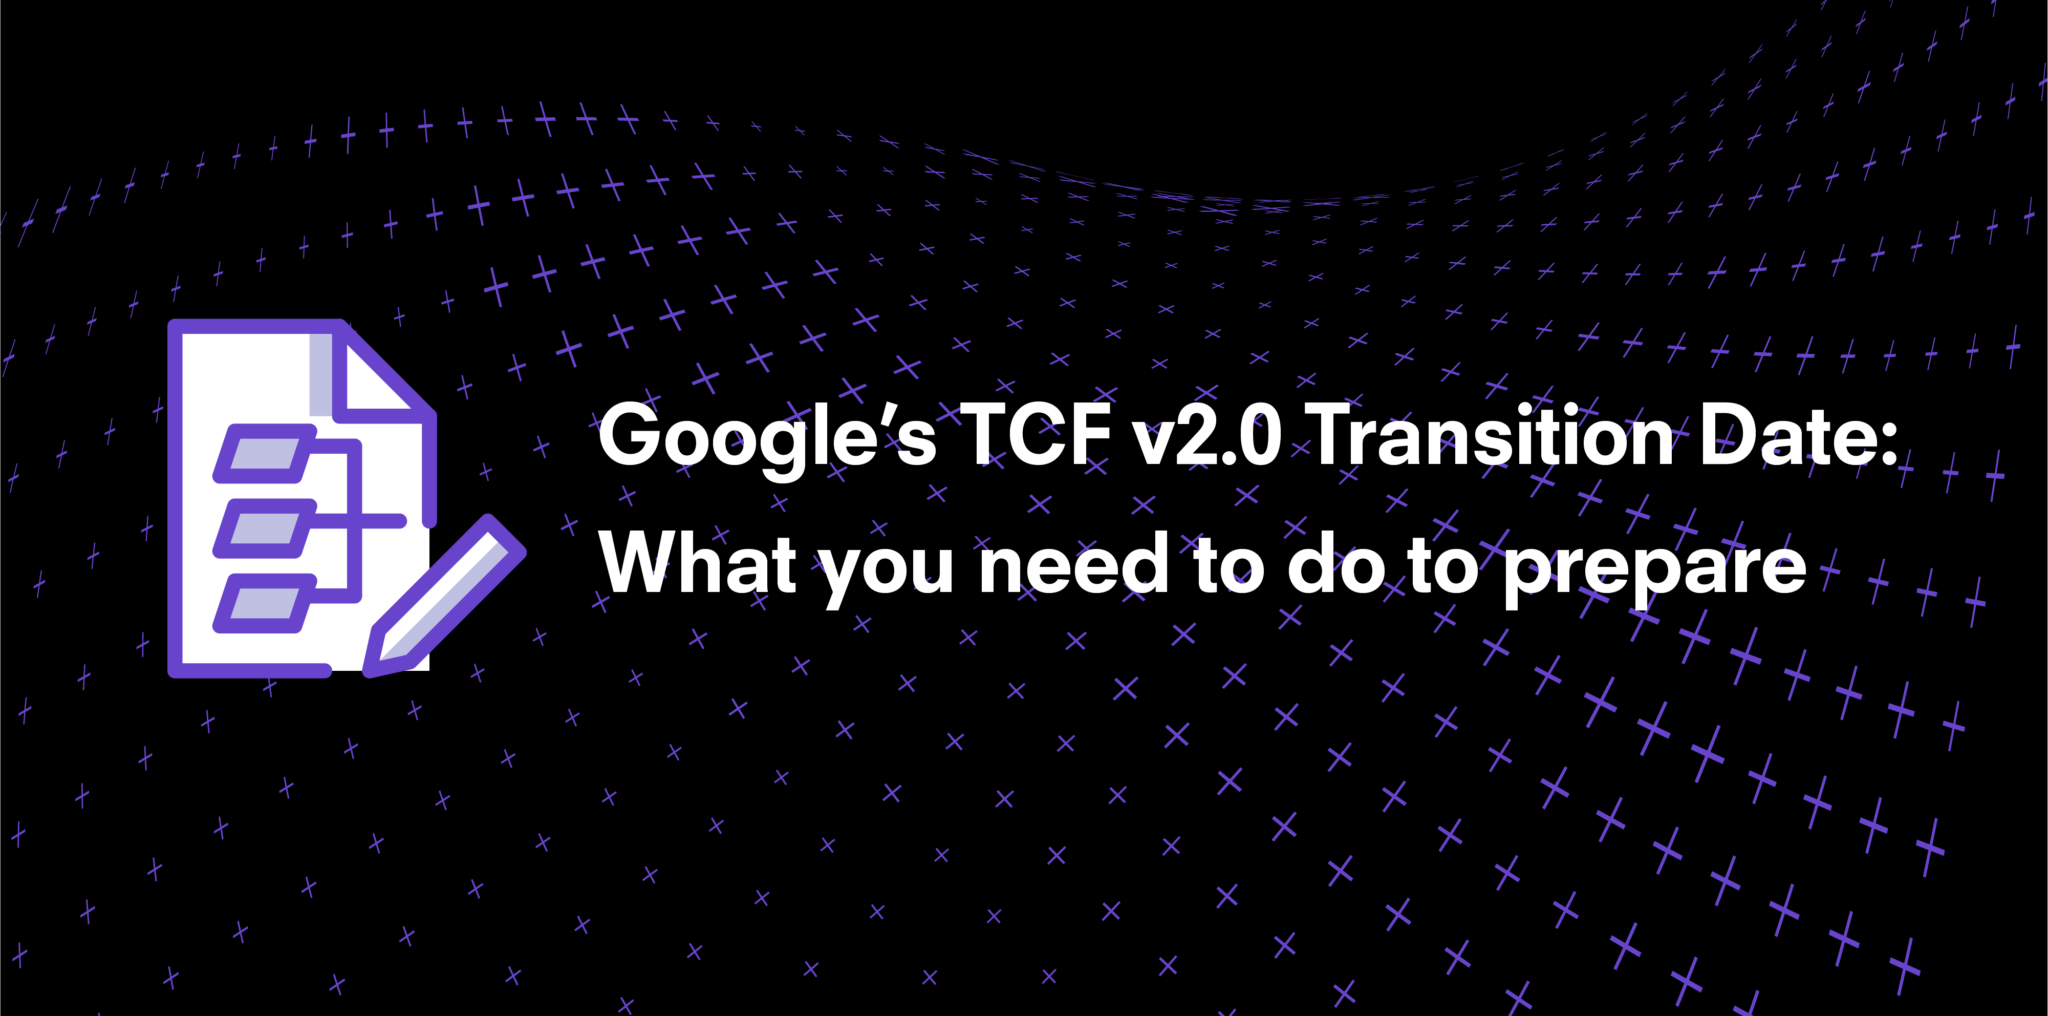 Google's TCF v2.0 Transition Date: What you need to do to prepare